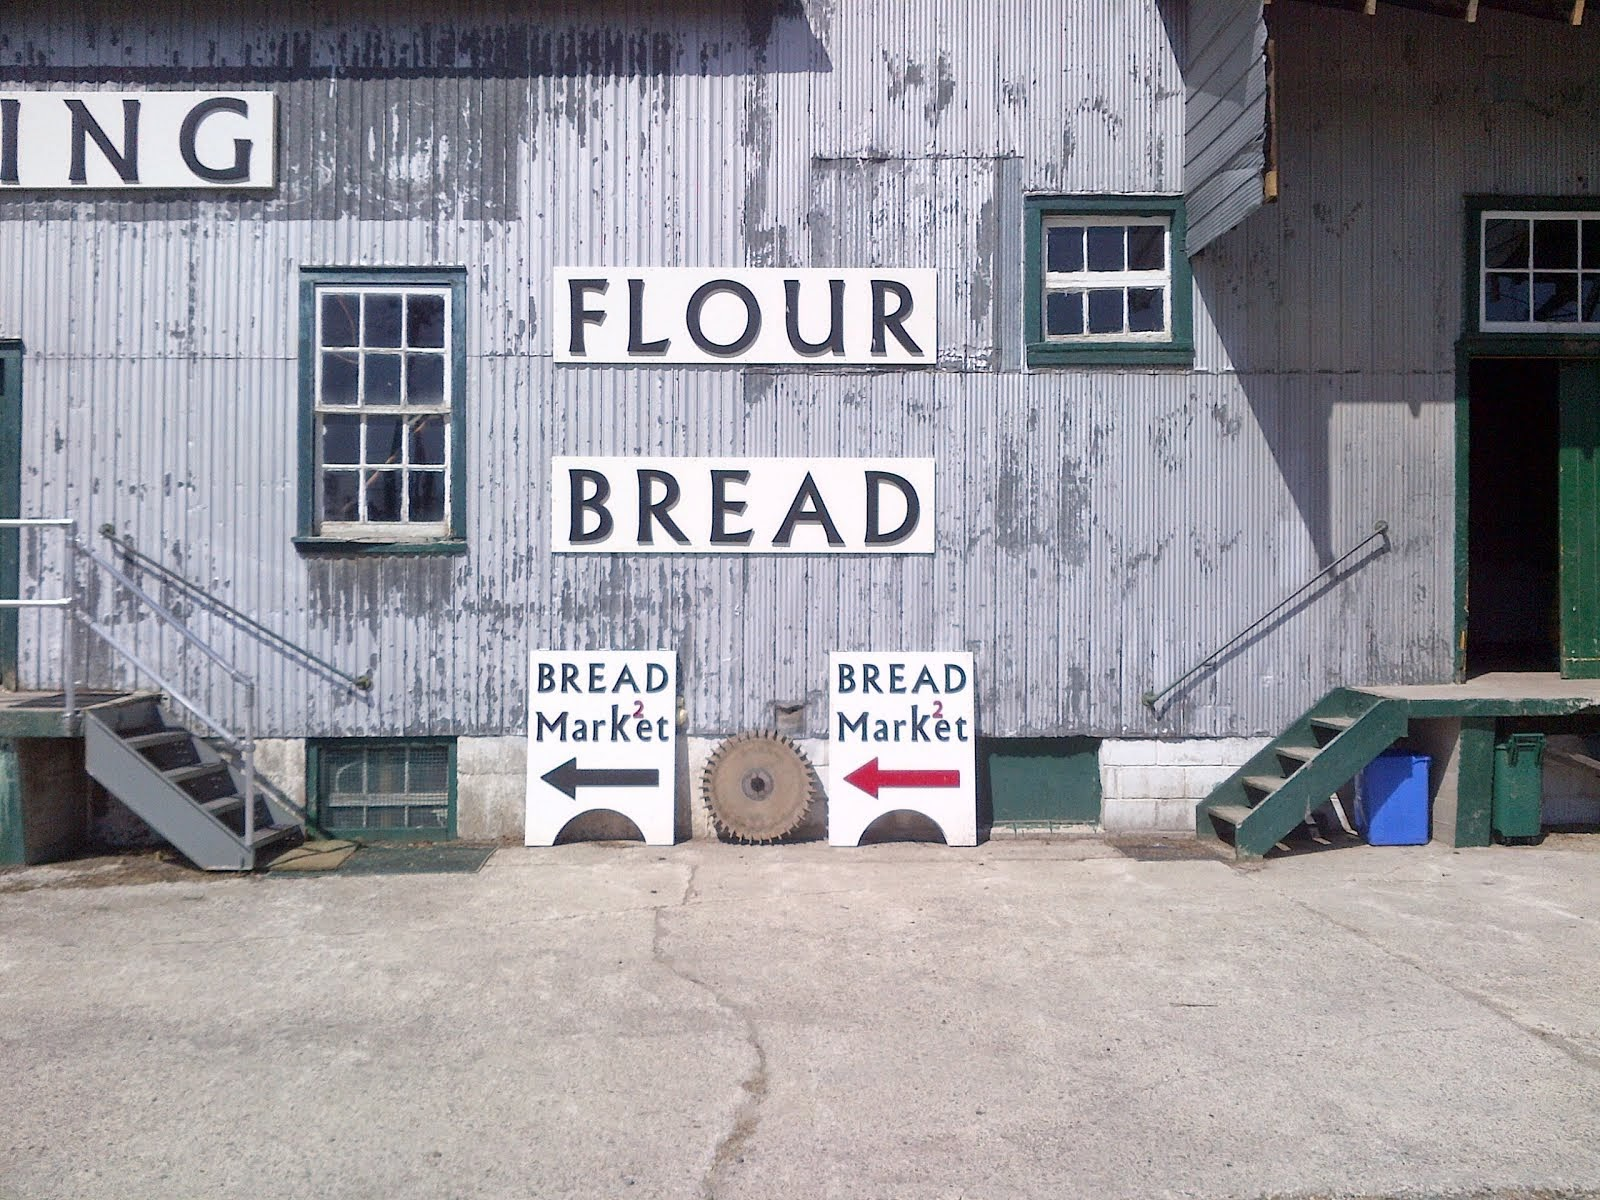 k2MILLING  -.- ..---Grinding; against the grain.  FLOUR   FLOUR  FLOUR  Beeton Mill MarKet